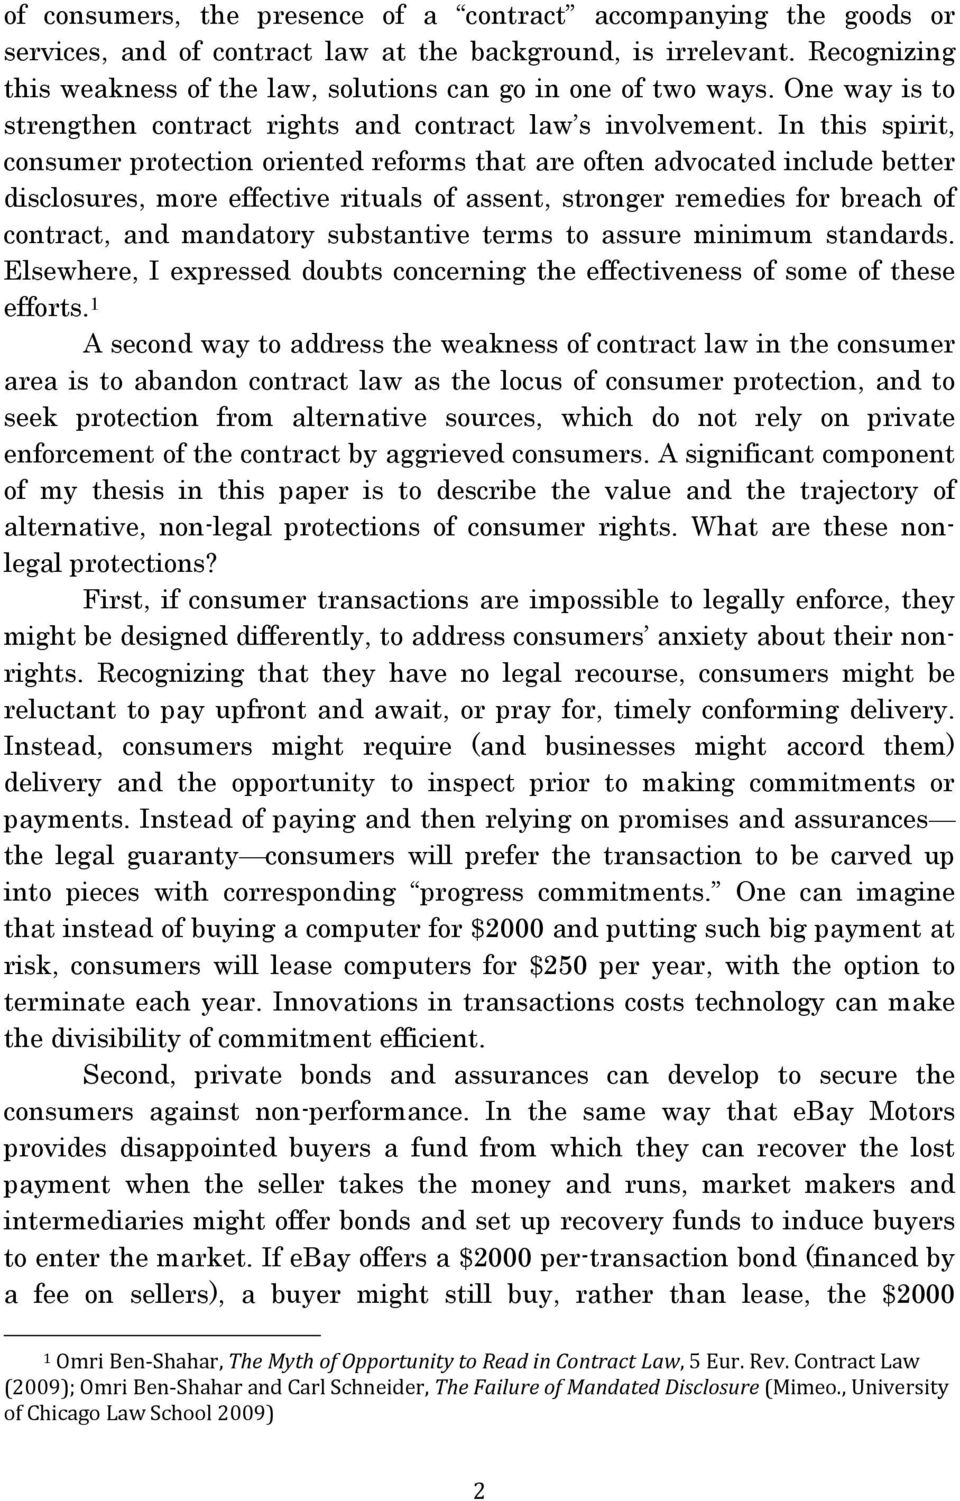 In this spirit, consumer protection oriented reforms that are often advocated include better disclosures, more effective rituals of assent, stronger remedies for breach of contract, and mandatory